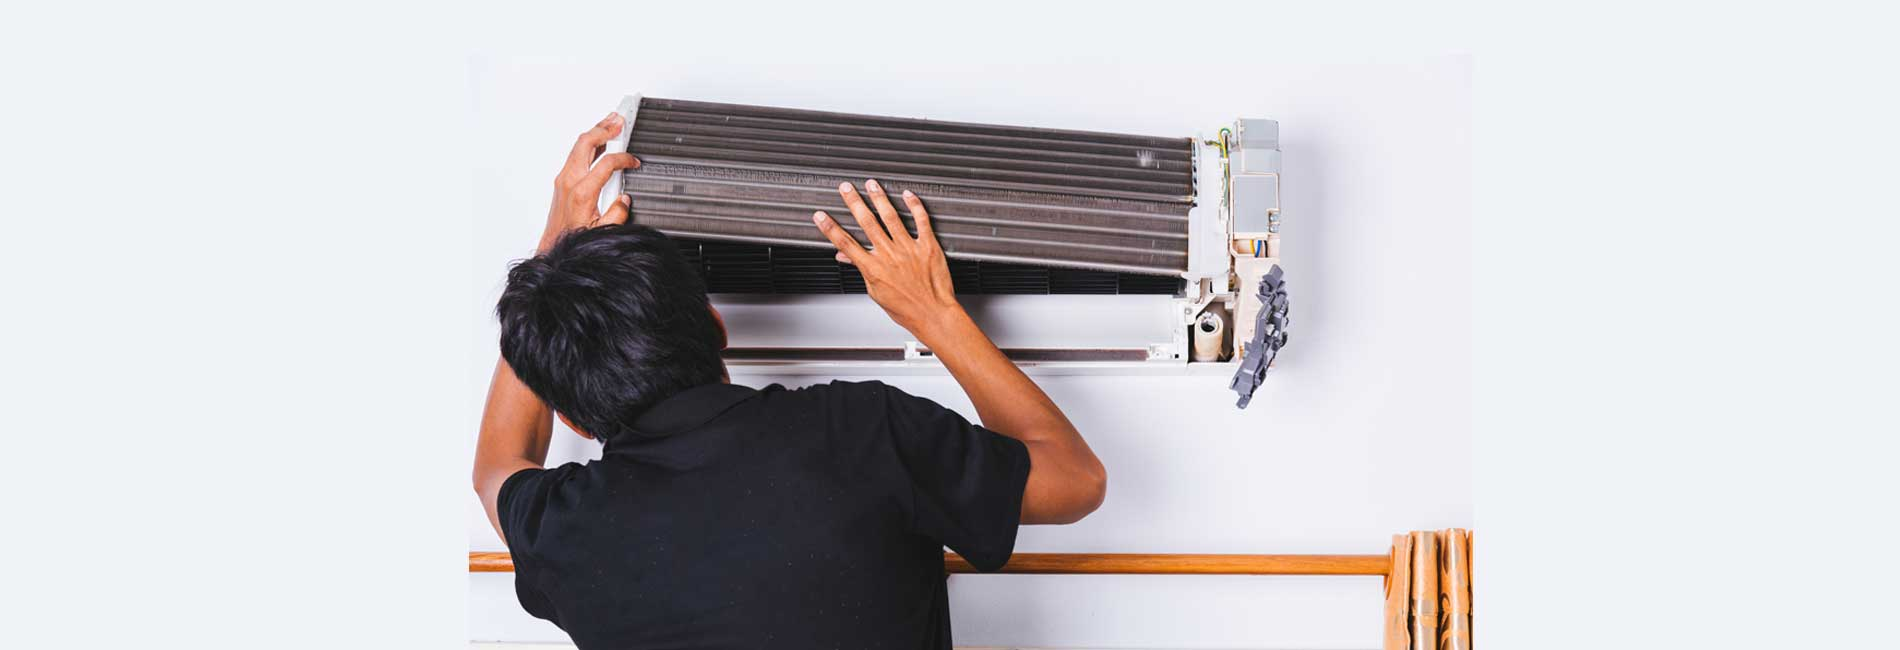 Air Condition Service in Saidapet west